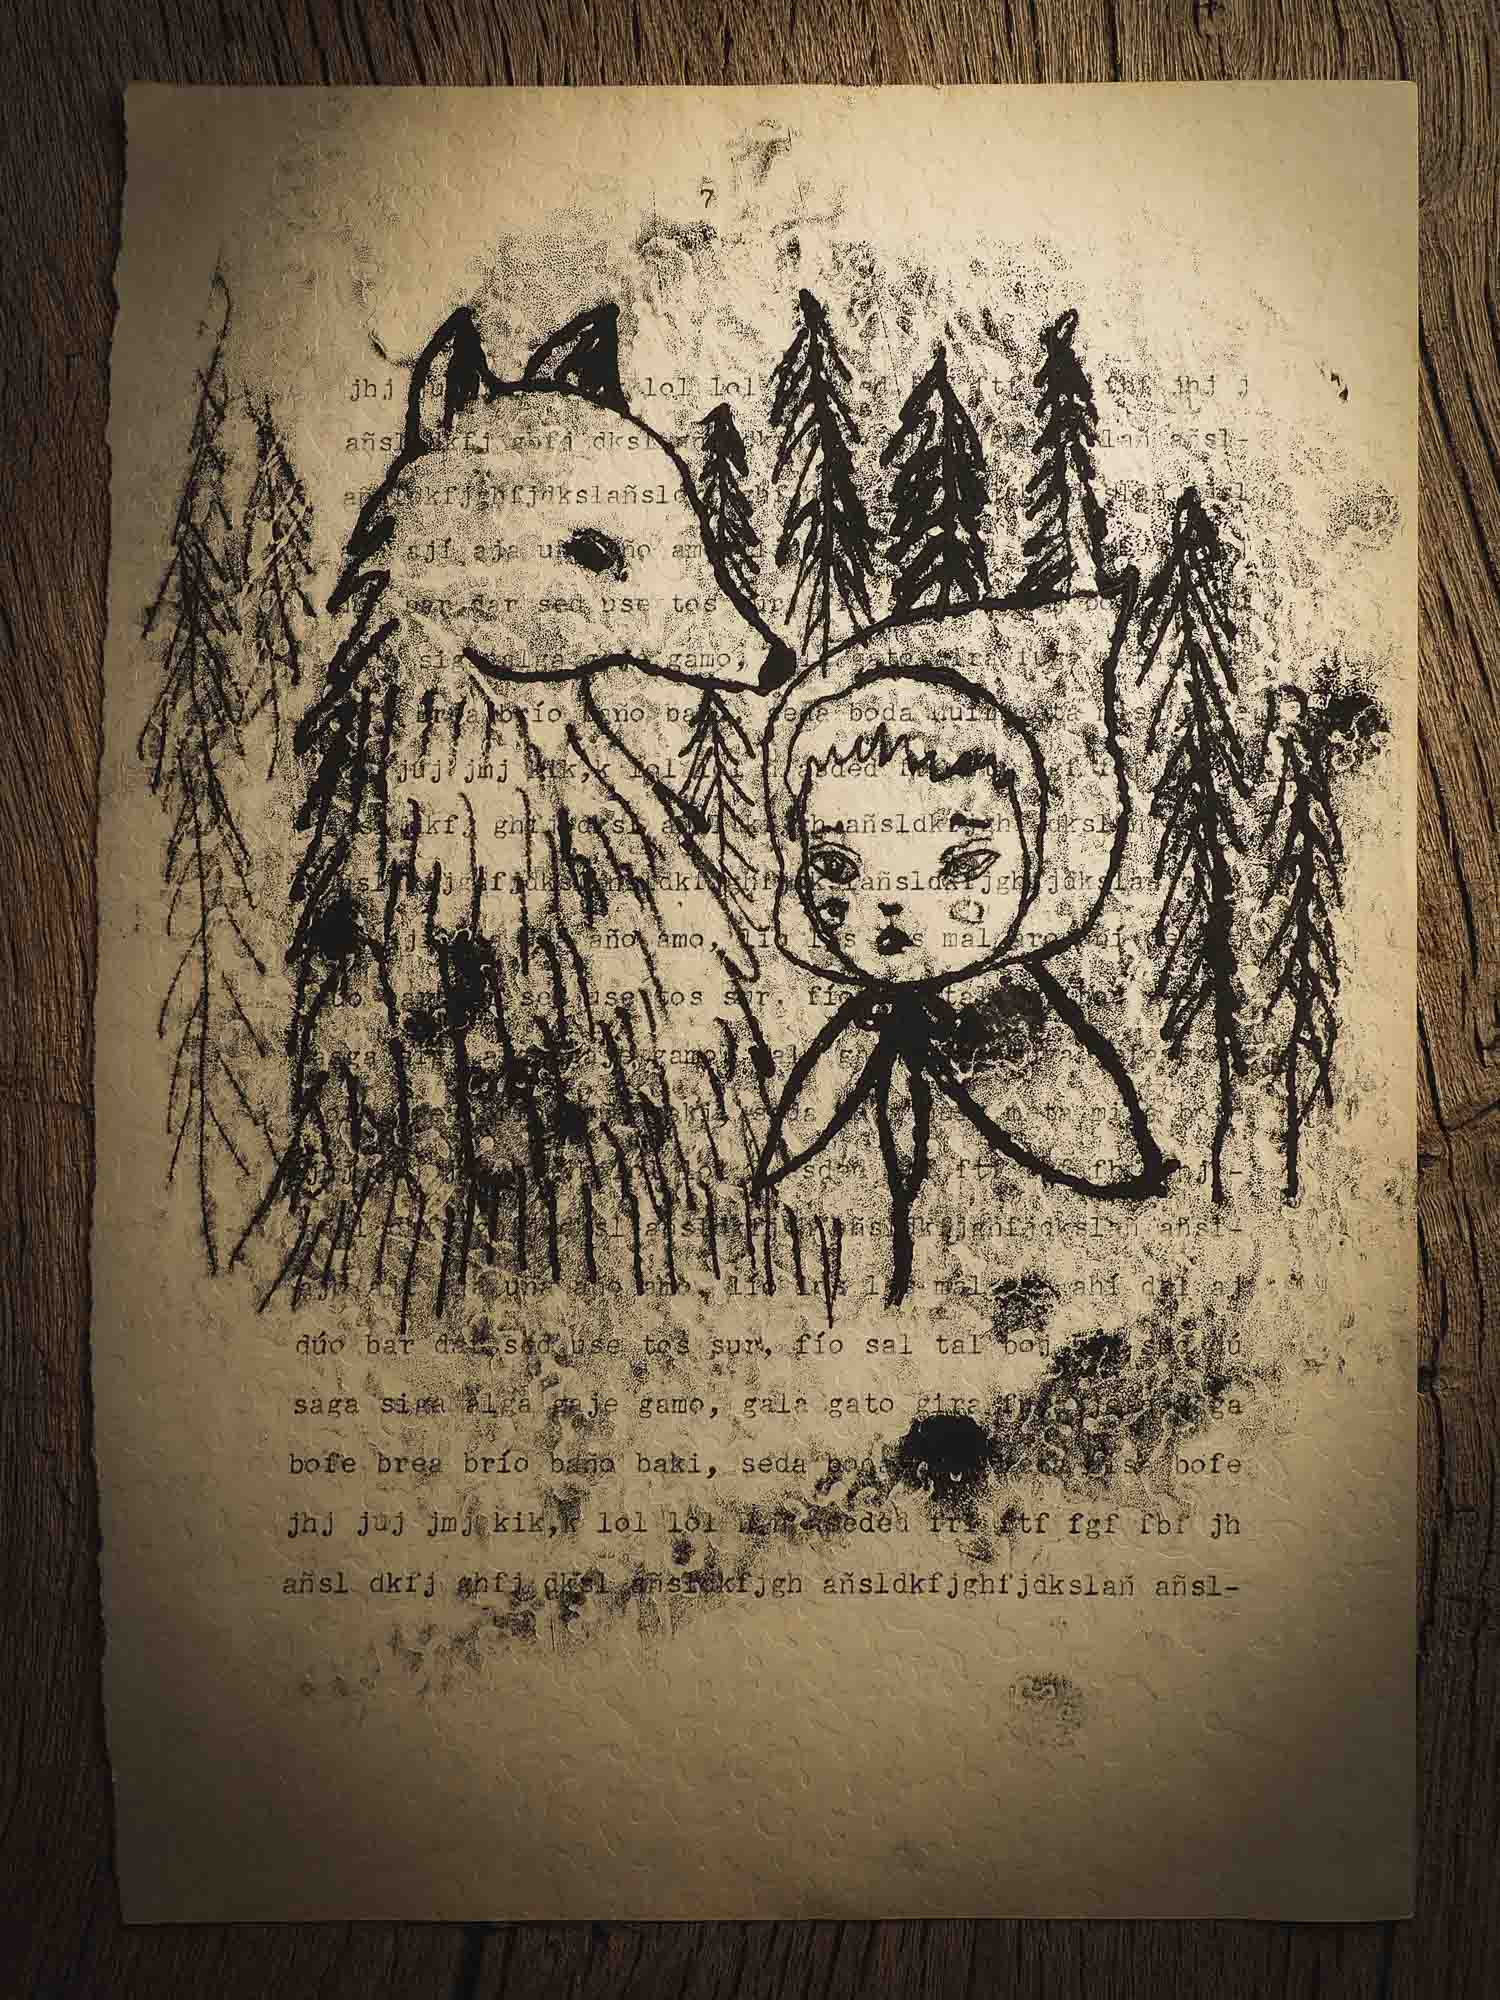 An original ink monoprint by Idania Salcido (Danita Art), this painting measures 7 x 11 inches on a fancy paper with mechanography exercises, dated from early 20th century. In my world, Little Red Riding Hood and The Wolf are friends and companions that play in the deep forest, where no one can bother them. No hunters, No annoying chores, just pure fun in nature.